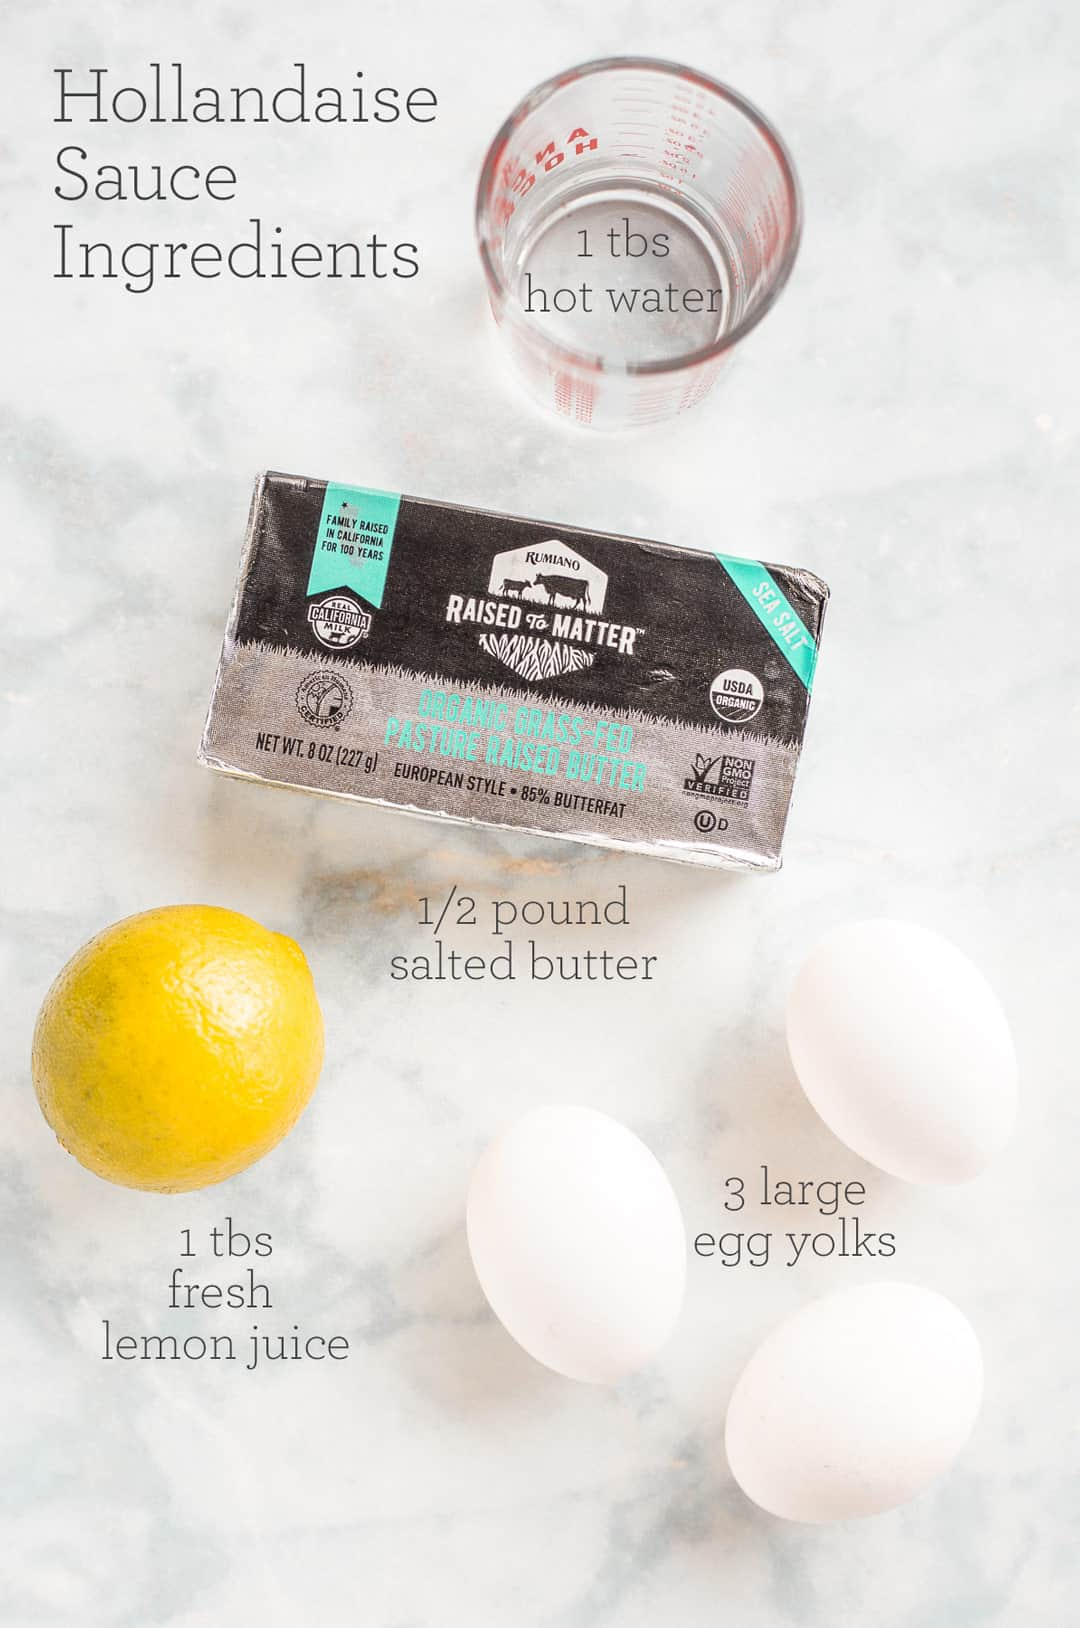 Ingredient for Hollandaise Sauce on a counter with text overlay for amounts required of each ingredient